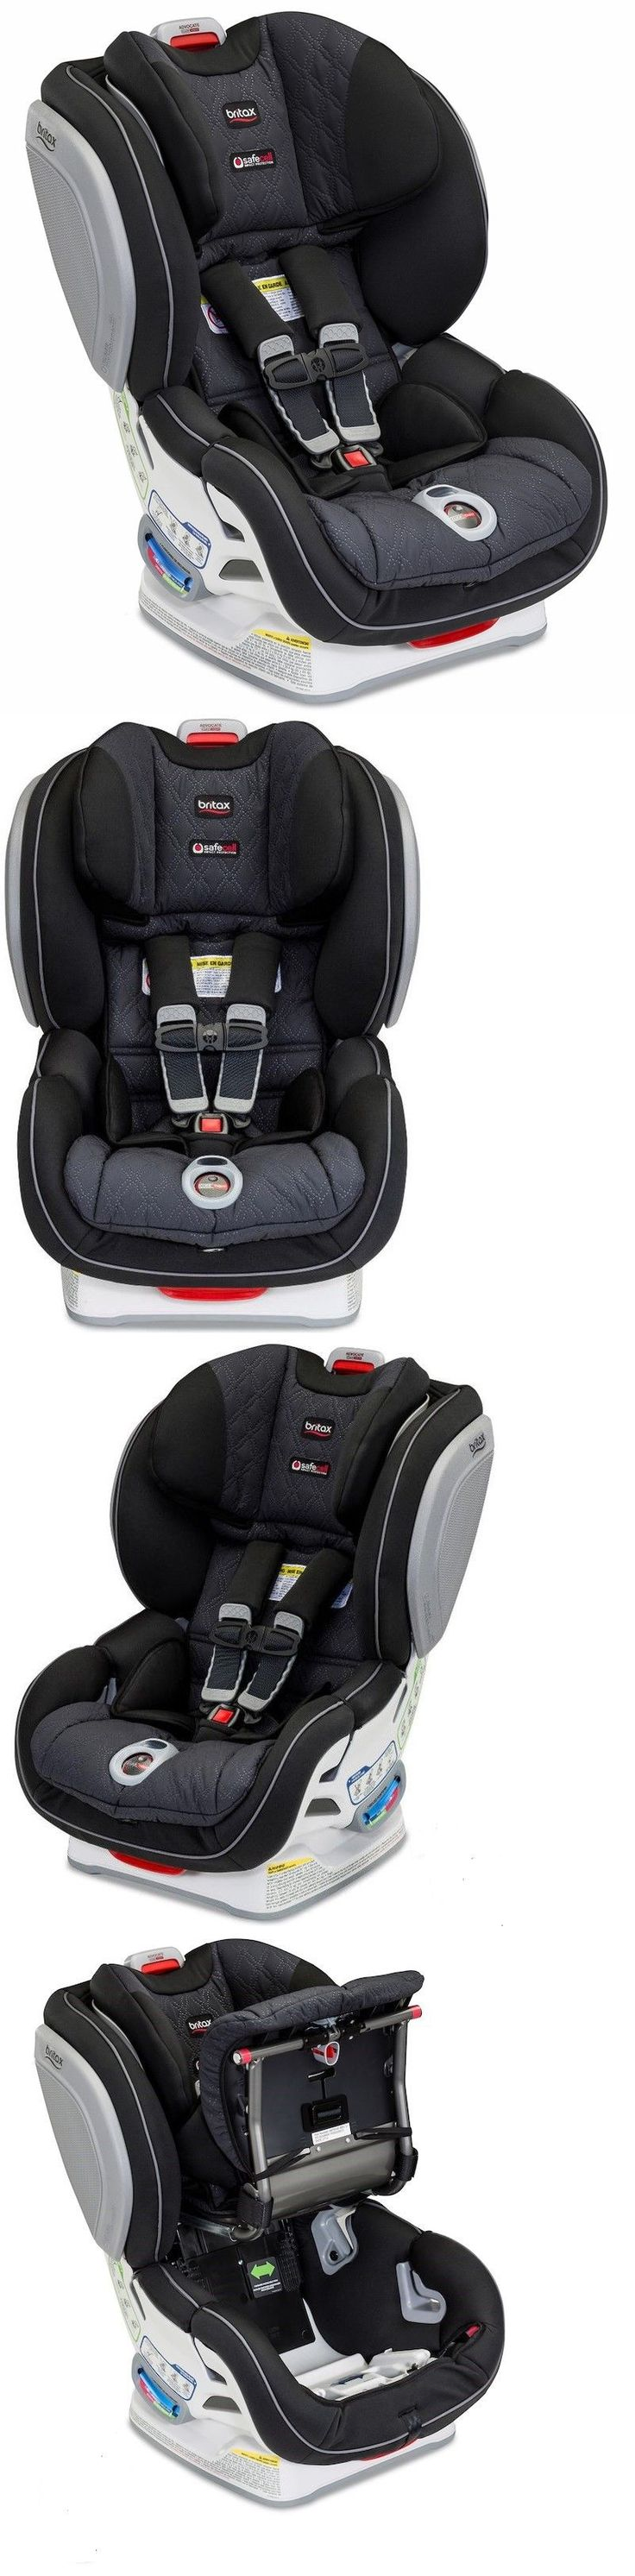 Convertible Car Seat 5-40lbs 66695: Britax Advocate 2017 Ct Clicktight Convertible Car Seat Trellis New! Click Tight -> BUY IT NOW ONLY: $307.99 on eBay!